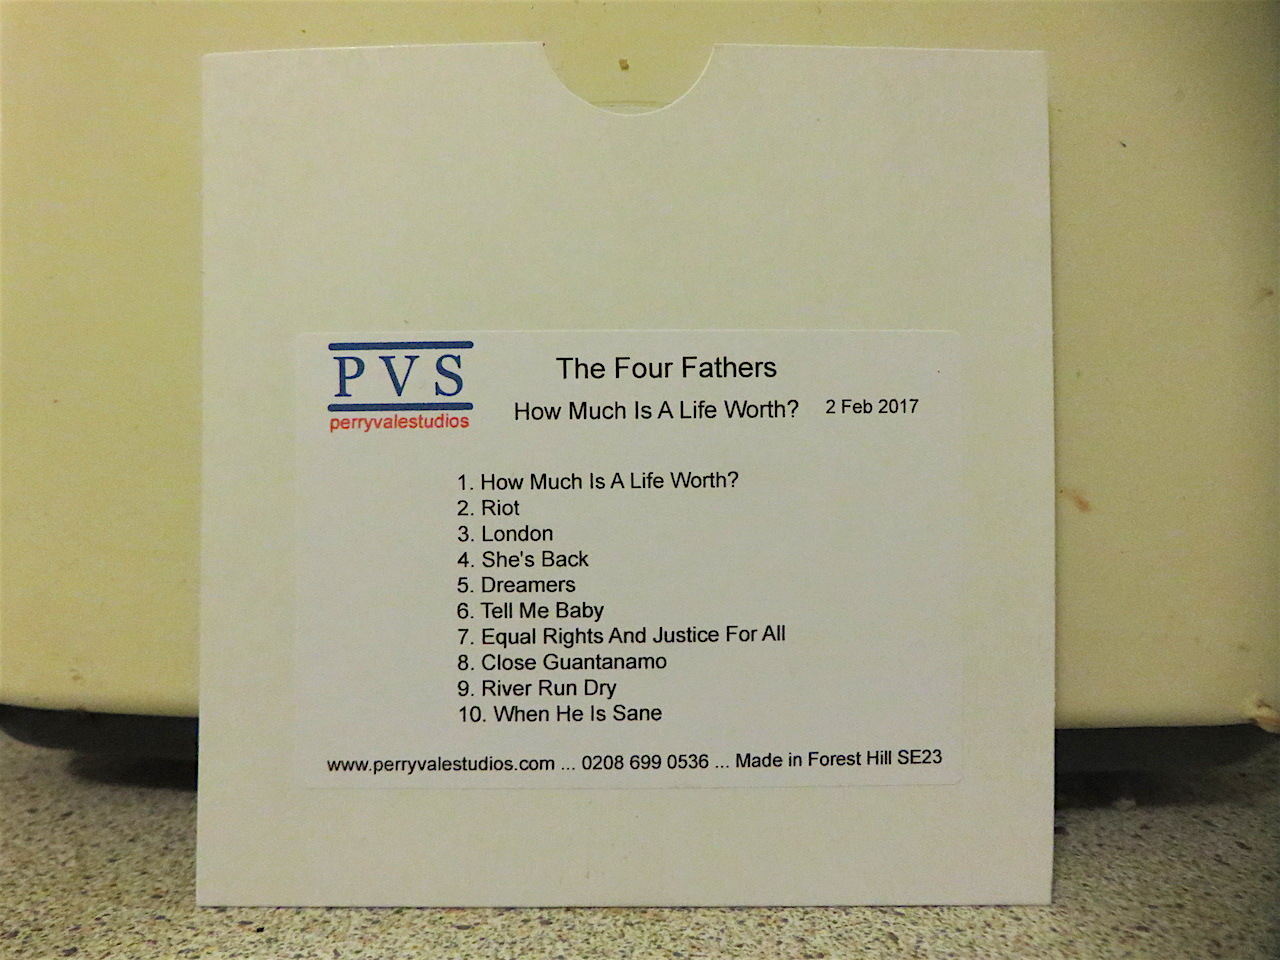 The running order of The Four Fathers' new album, 'How Much Is A Life Worth?'